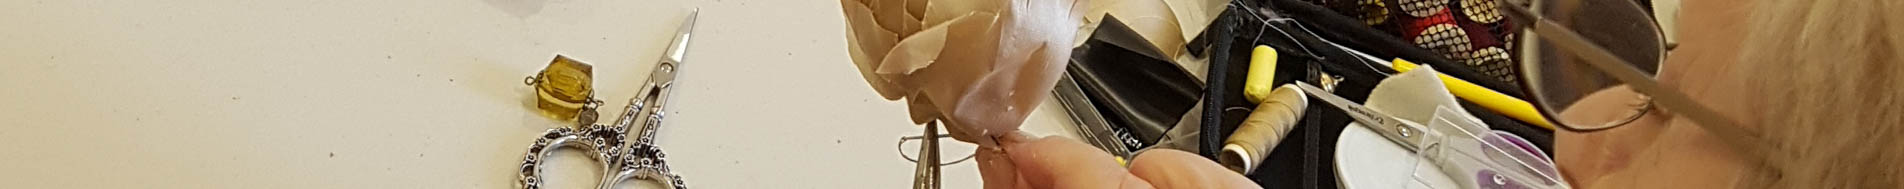 sewing a flower